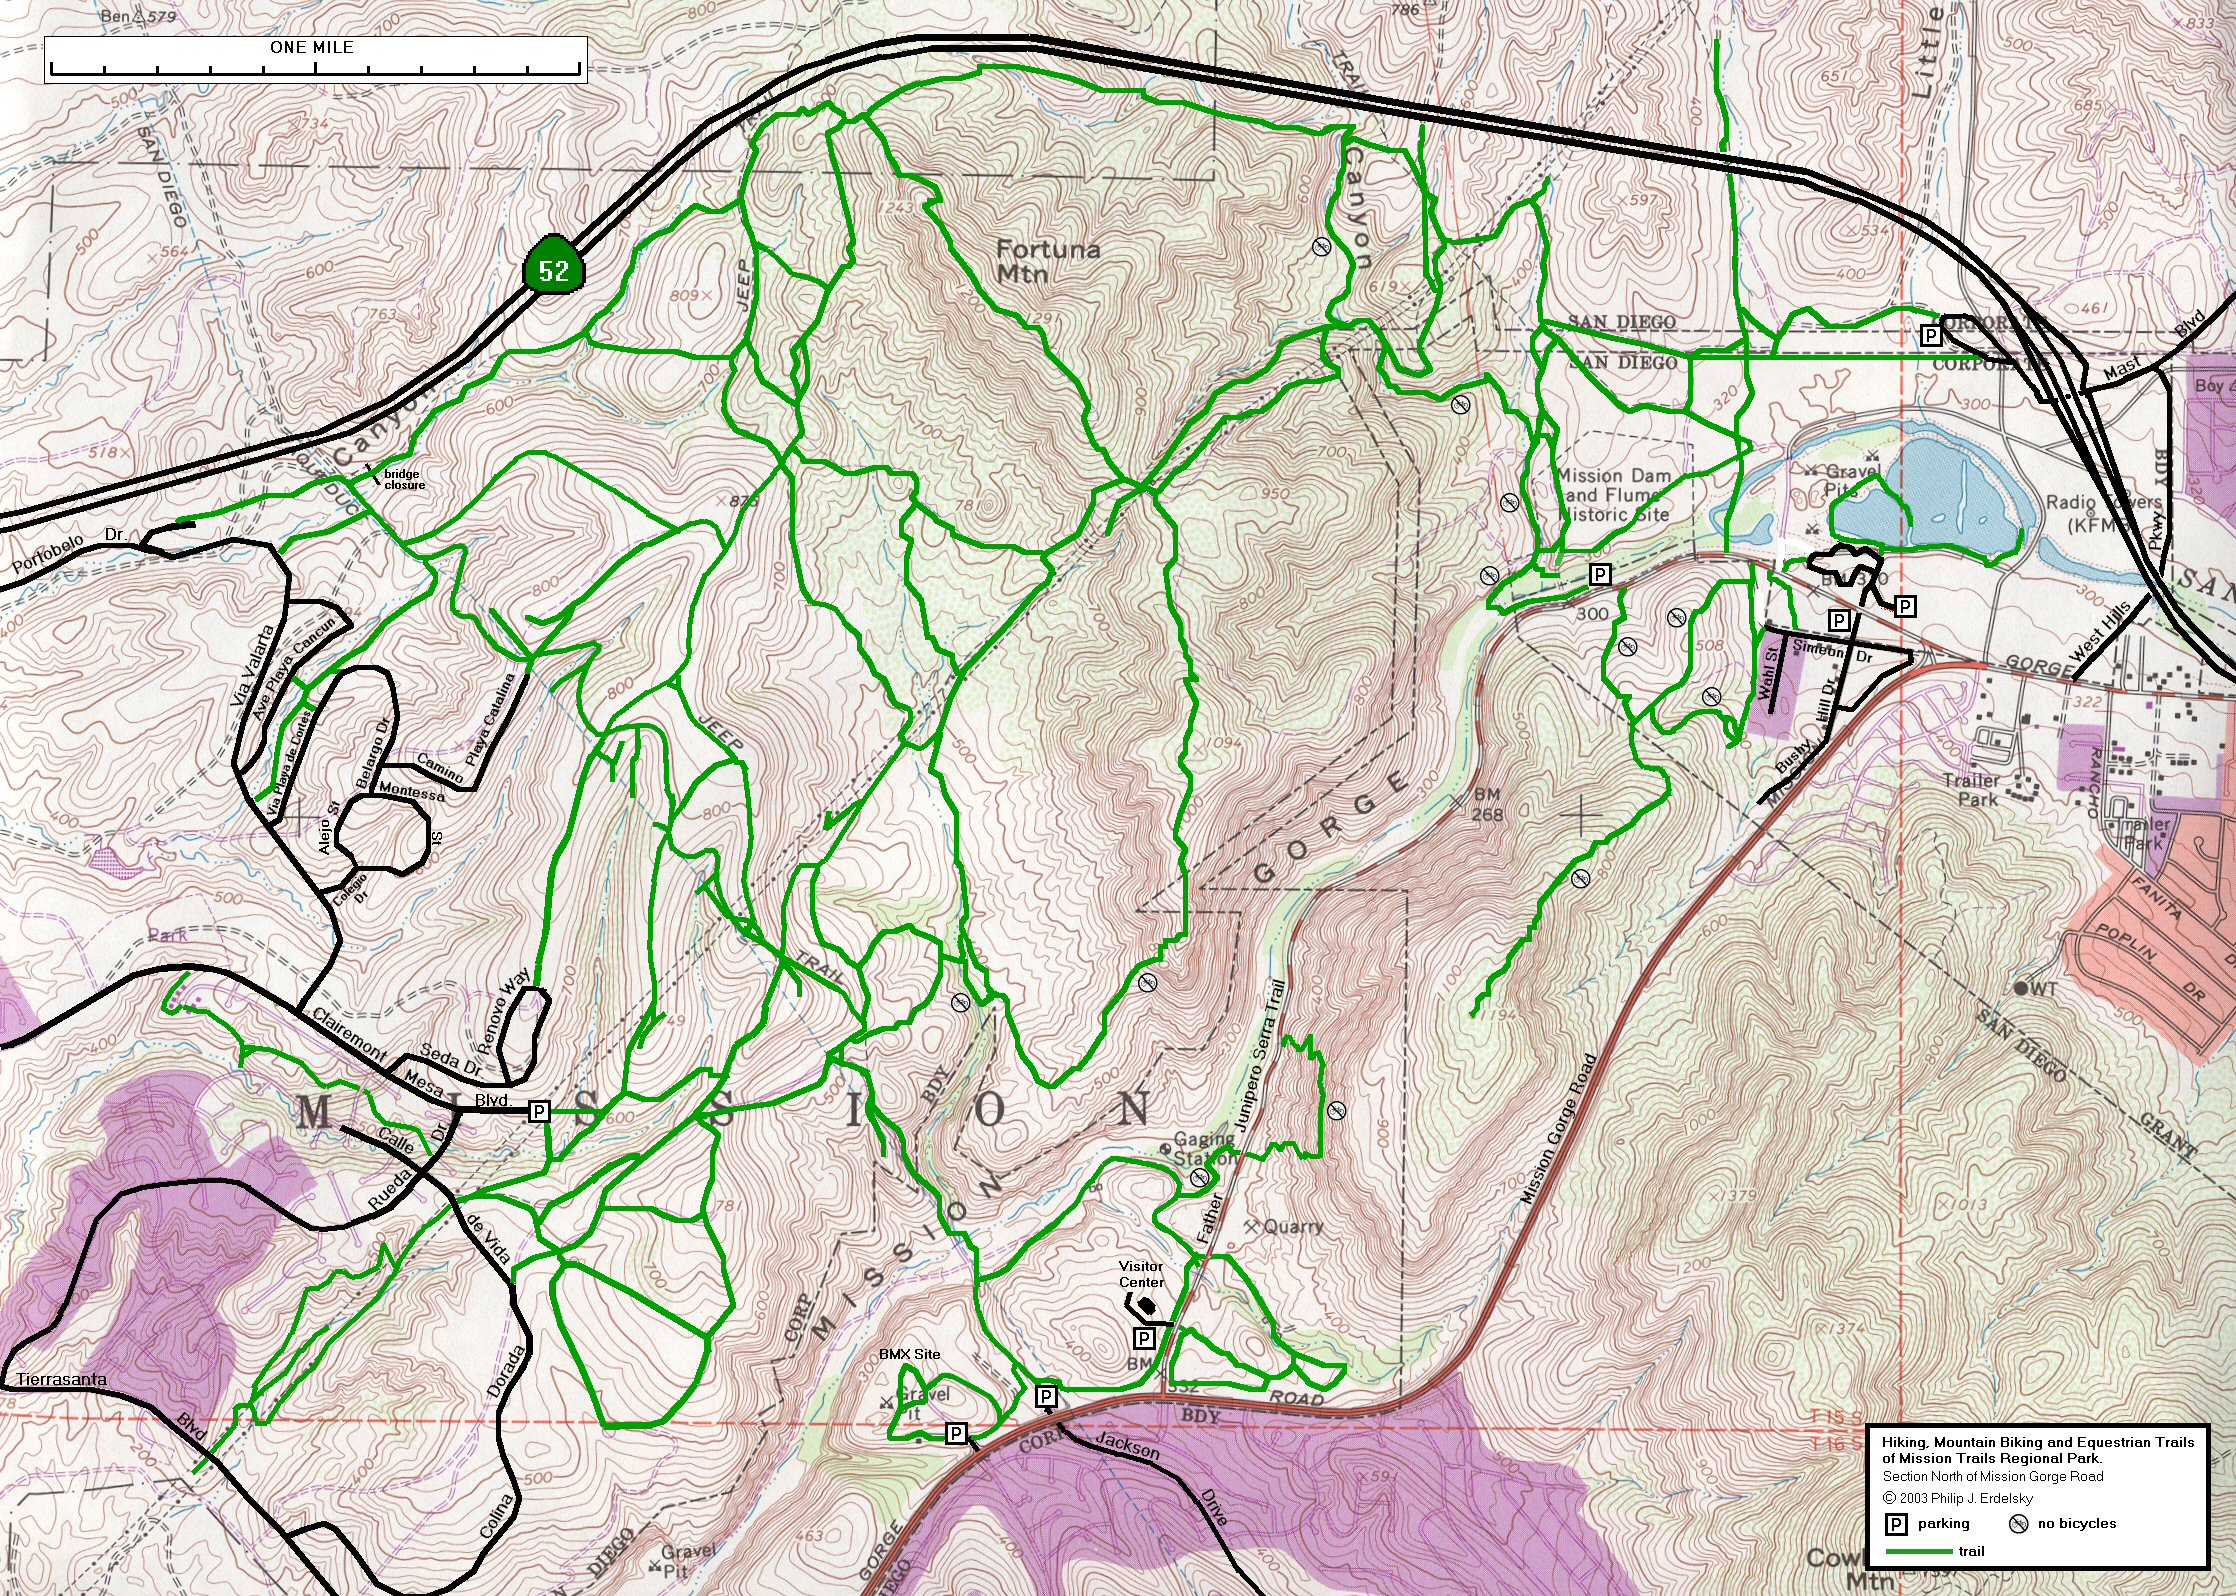 Mission Trails Regional Park A Map Of The Trails In Part Of Mission Trails Regional Park Drawn To Scale And Superimposed Over A Topographic Map